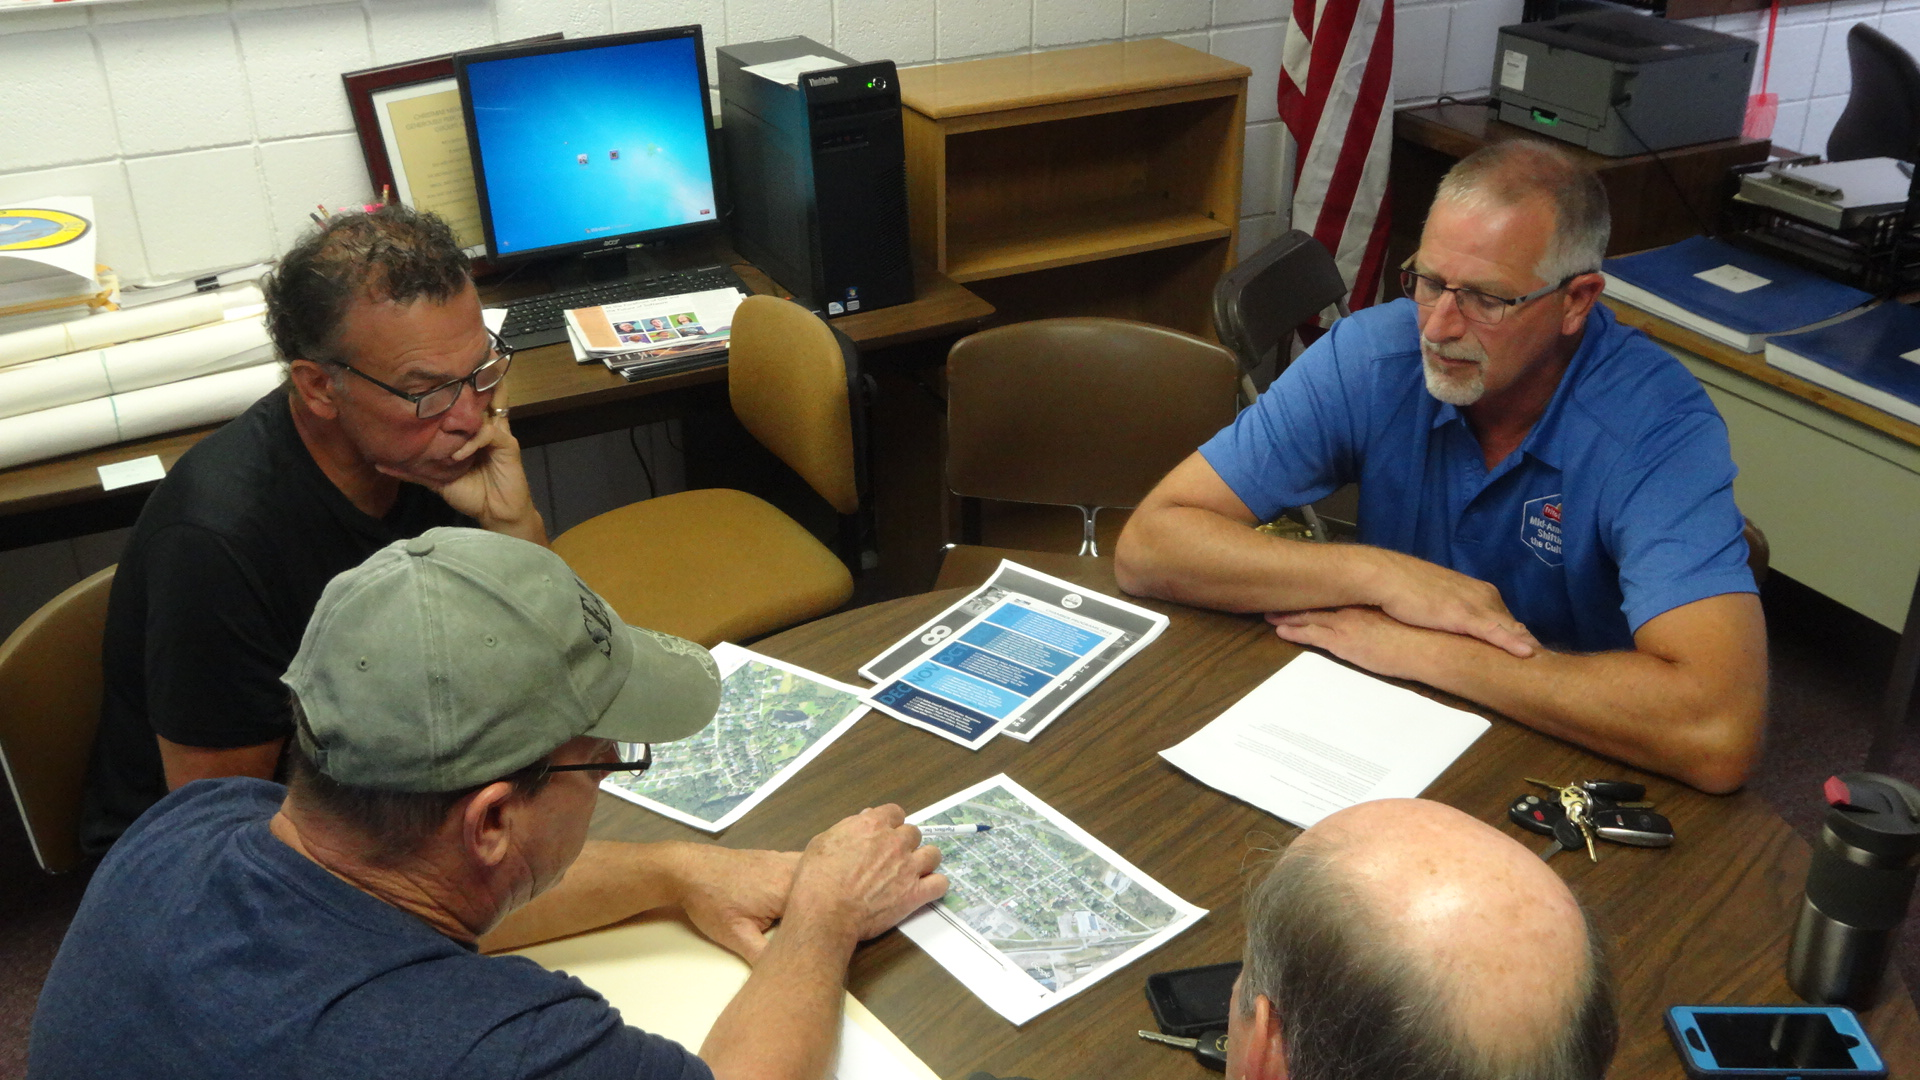 Brookfield Road Superintendent Jaime Fredenburg, in hat, points to a map to show an area that floods in the Valley View neighborhood. Also shown are, clockwise from left, resident Steve Franz and Trustees Ron Haun and Gary Lees.